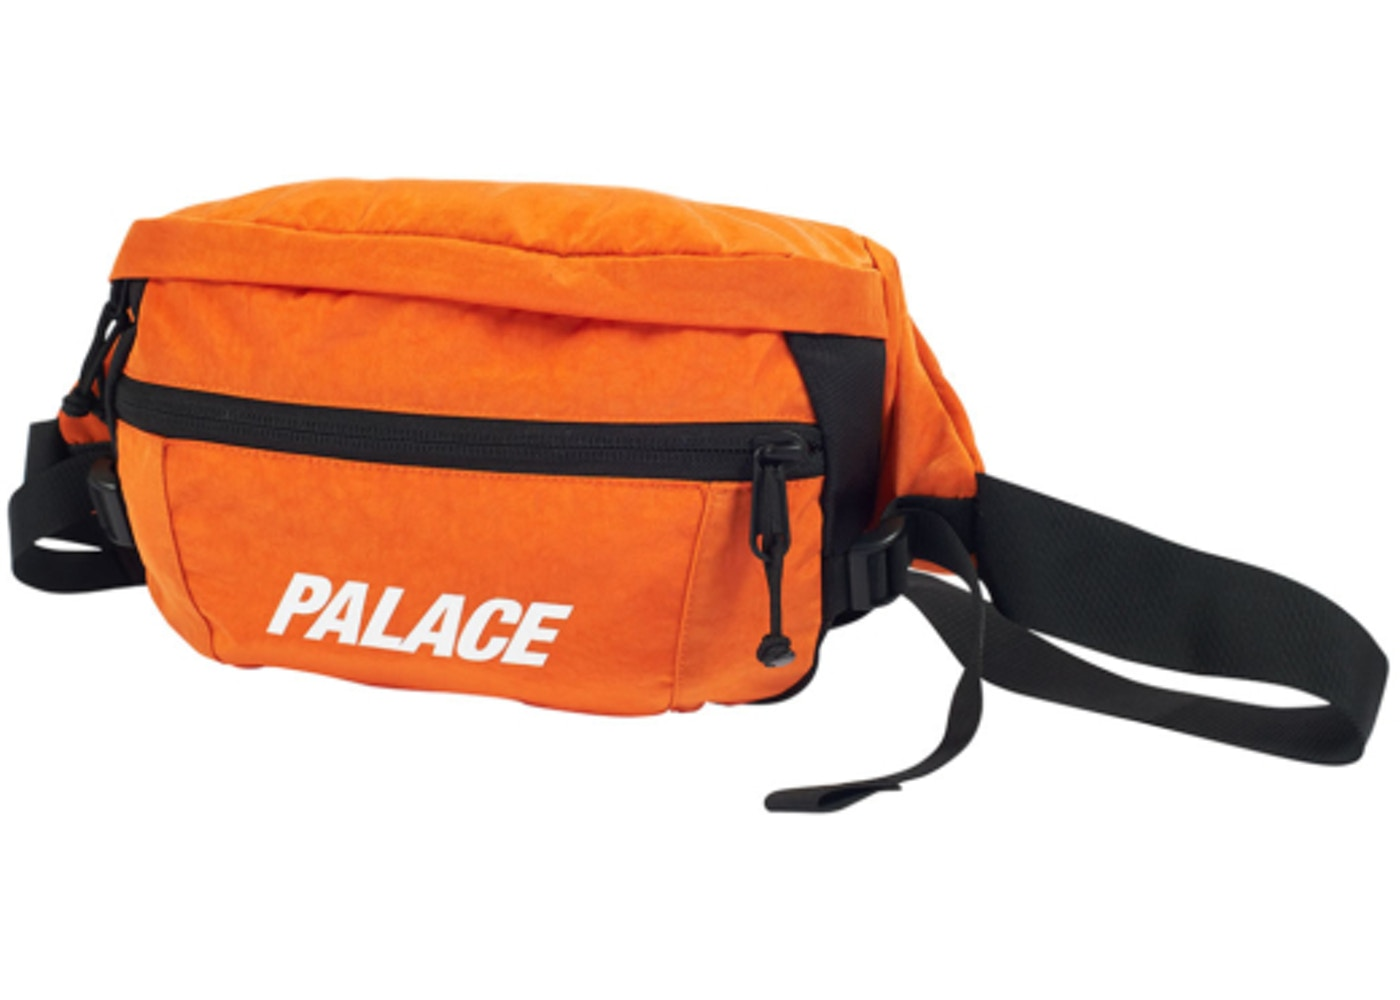 7c285096 Streetwear - Palace Bags - Total Sold